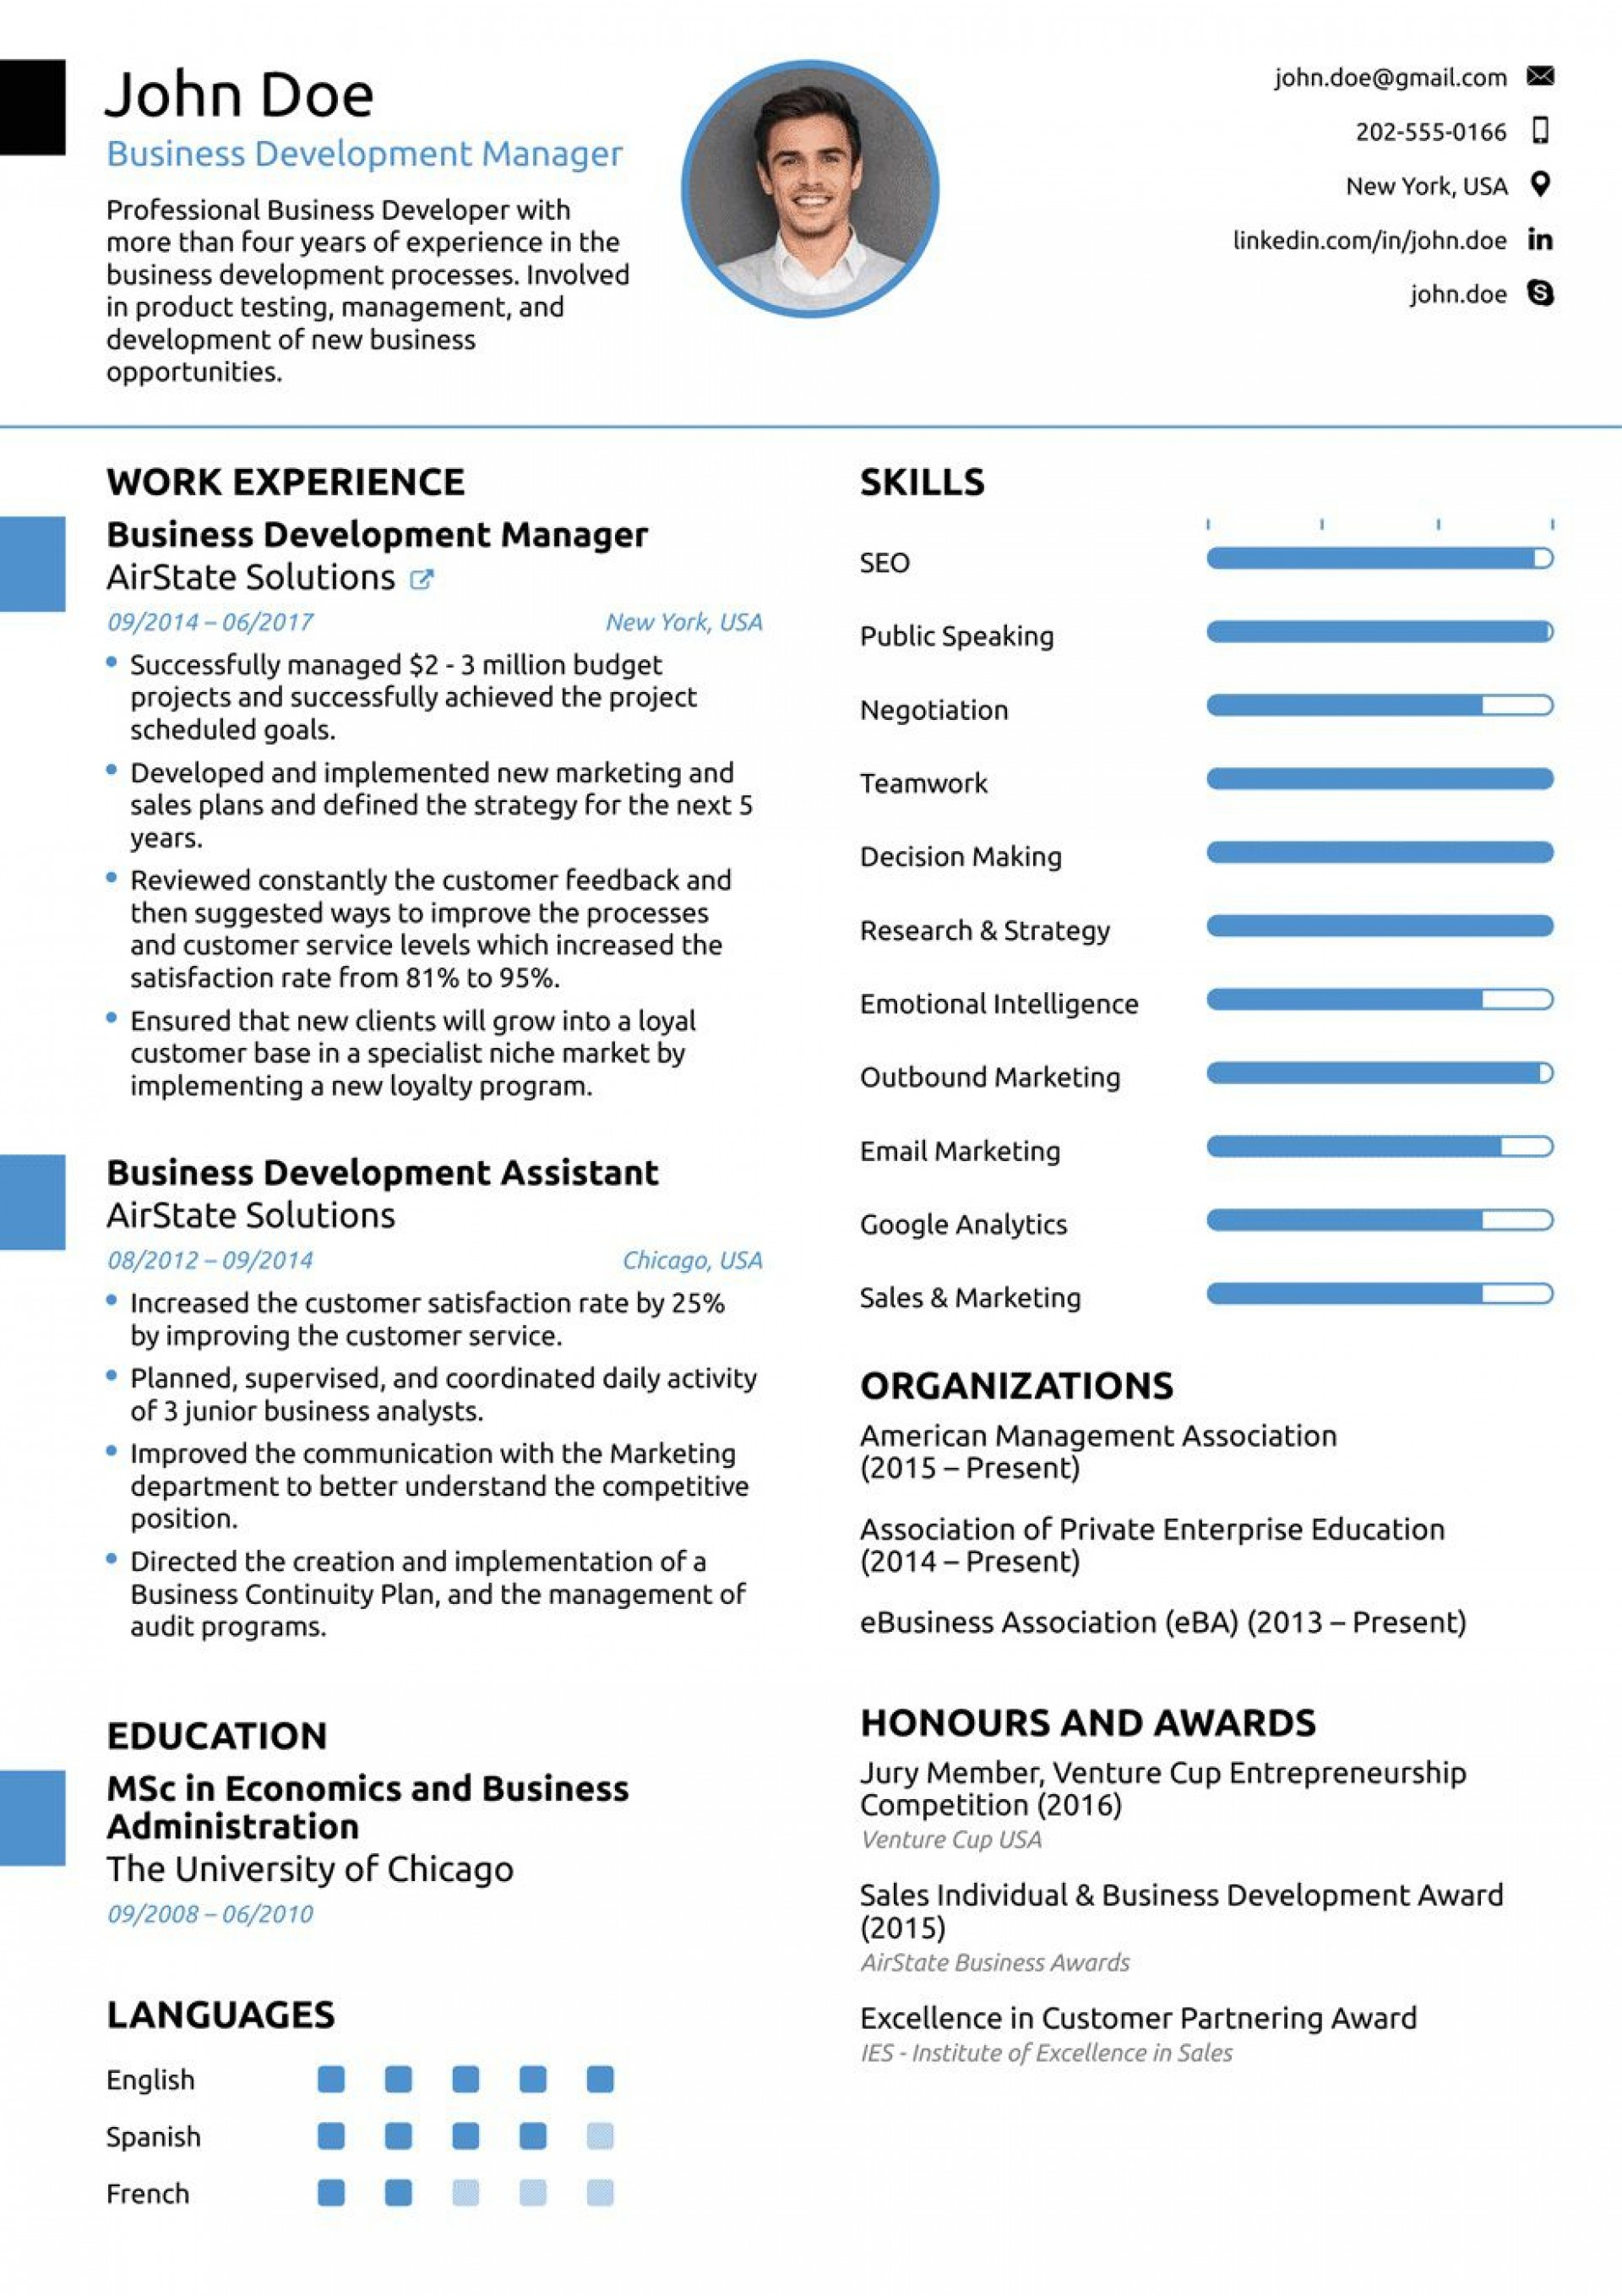 007 Fearsome Professional Resume Template Example Design  Examples Layout Cv Writing Format1920